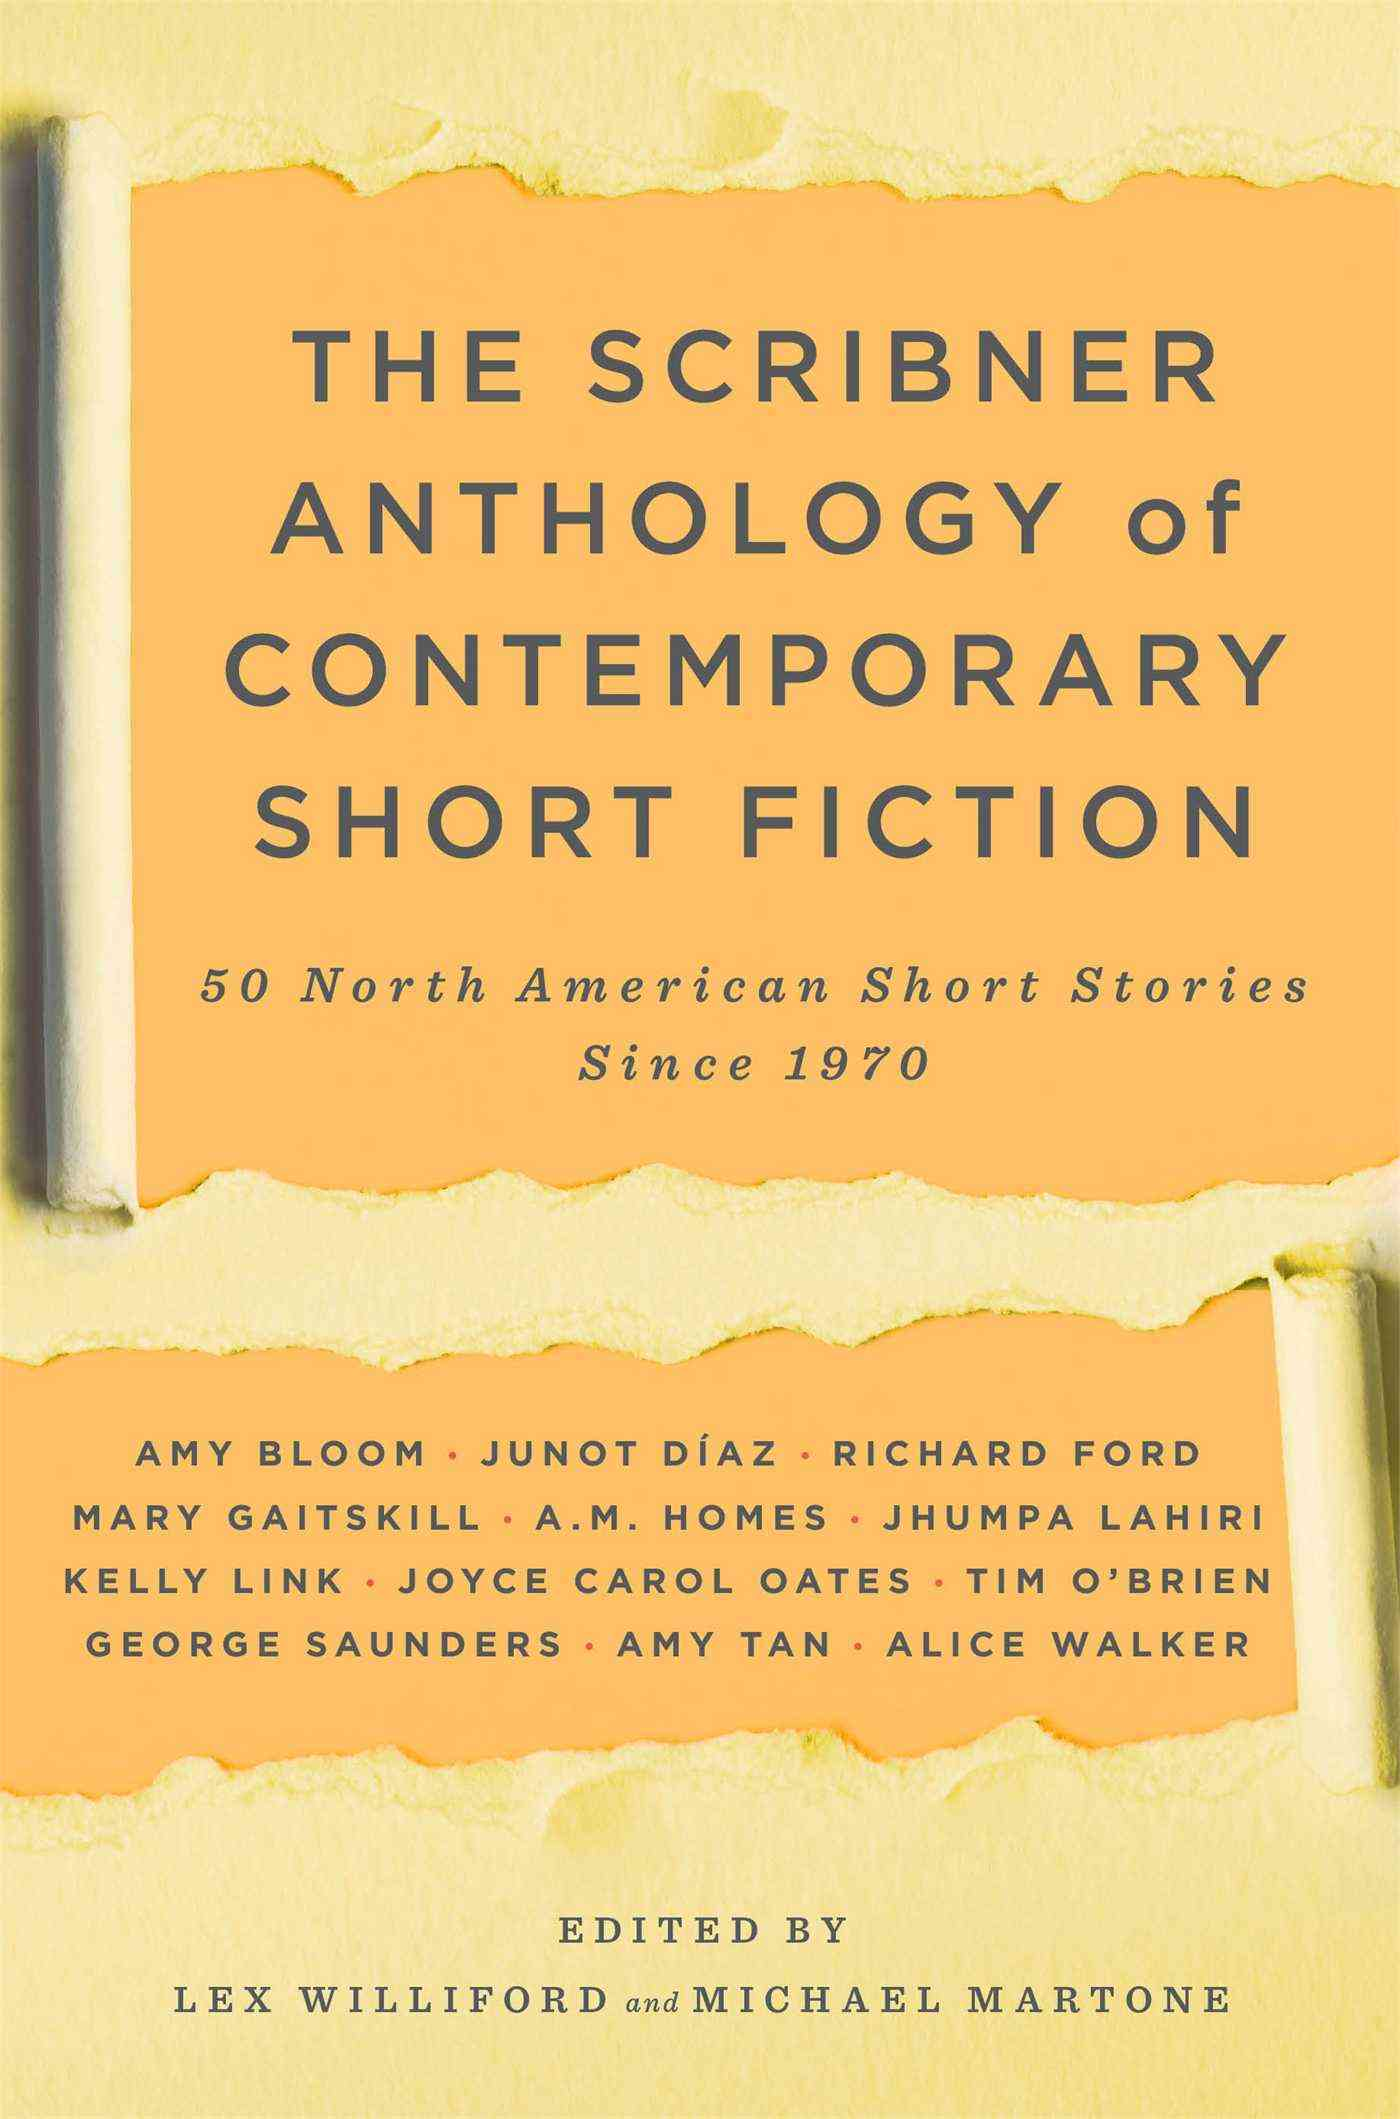 The Scribner Anthology of Contemporary Short Fiction: 50 North American Short Stories Since 1970 (Paperback)